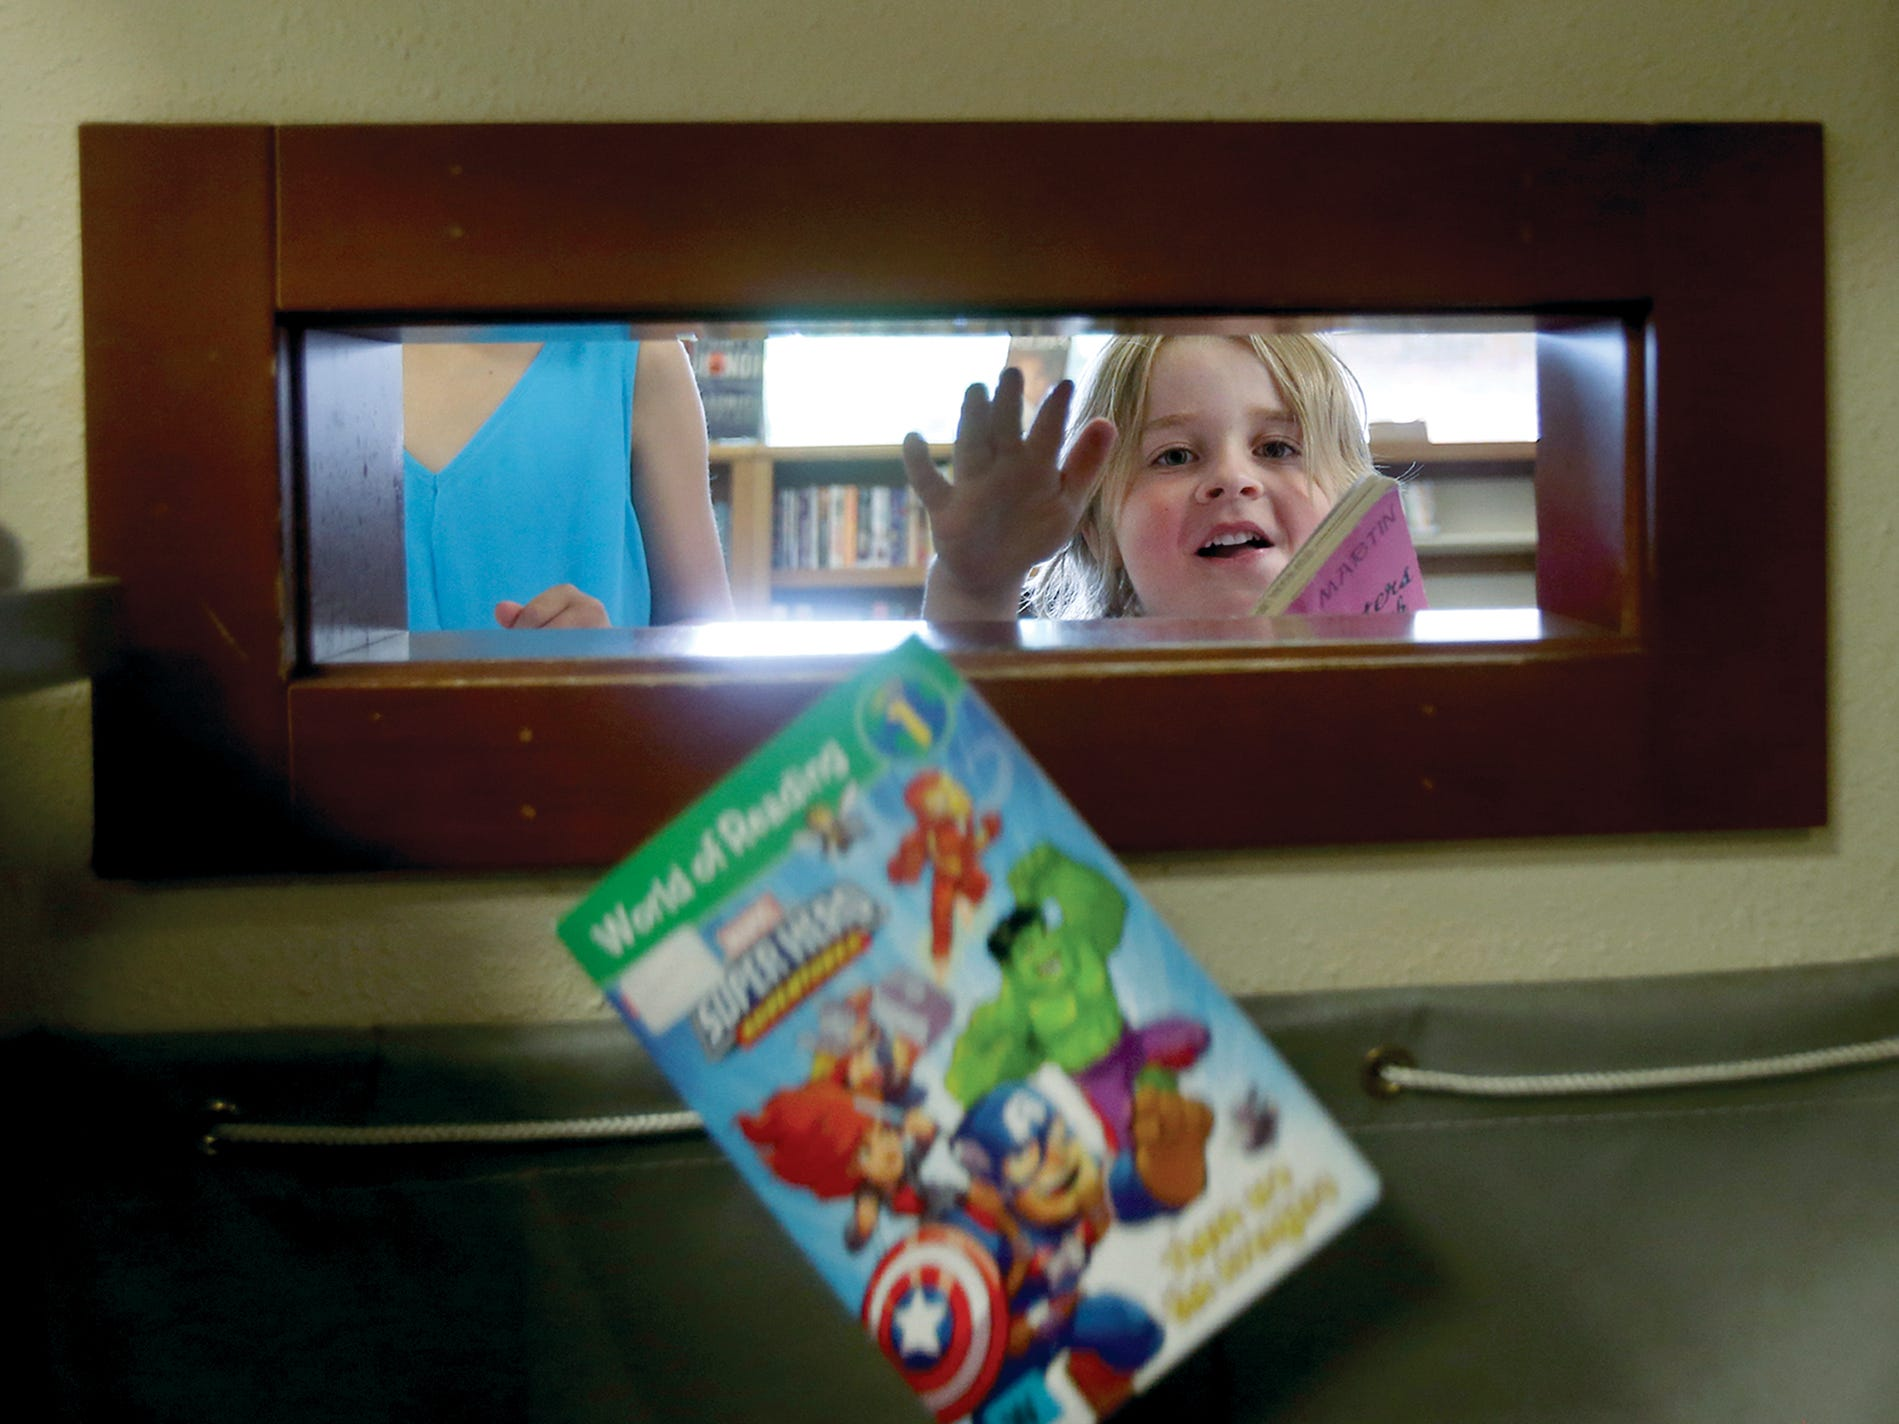 Ivan Churchman-Bailey, 4, of Bremerton drops a book into the drop box at the Kitsap Regional Library, Central Branch in East Bremerton on Tuesday. He is participating in the summer reading program to earn tickets to the Kitsap County Fair & Stampede in August. The Kitsap Regional Libraries are getting rid of the late fees as one of the levy promises.